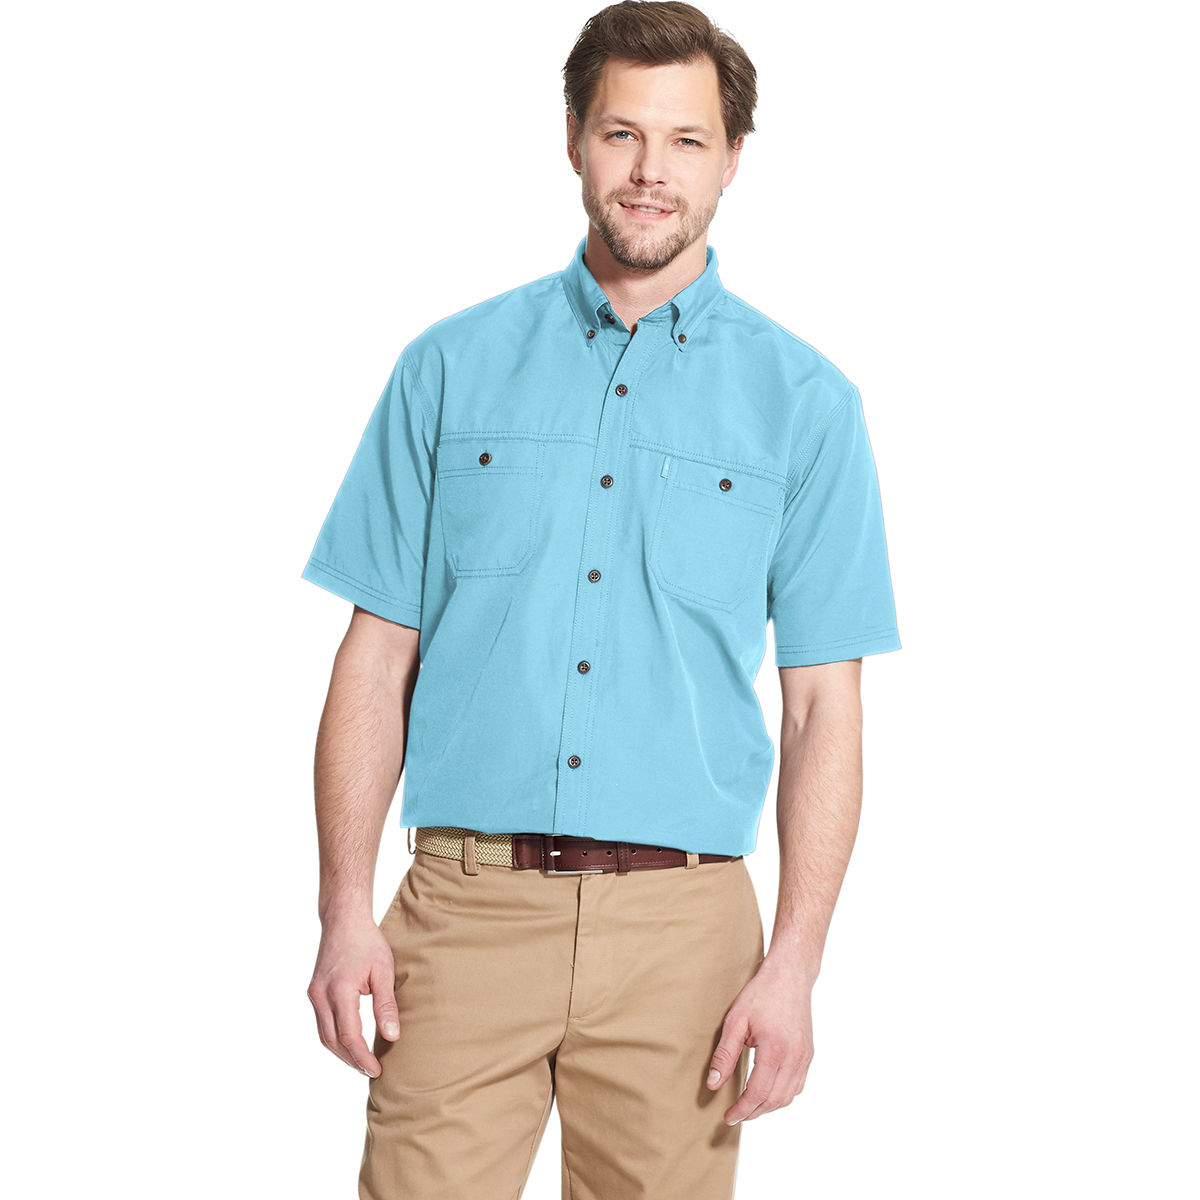 G.H. BASS Men's Bluewater Bay Fisherman's Short-Sleeve Shirt